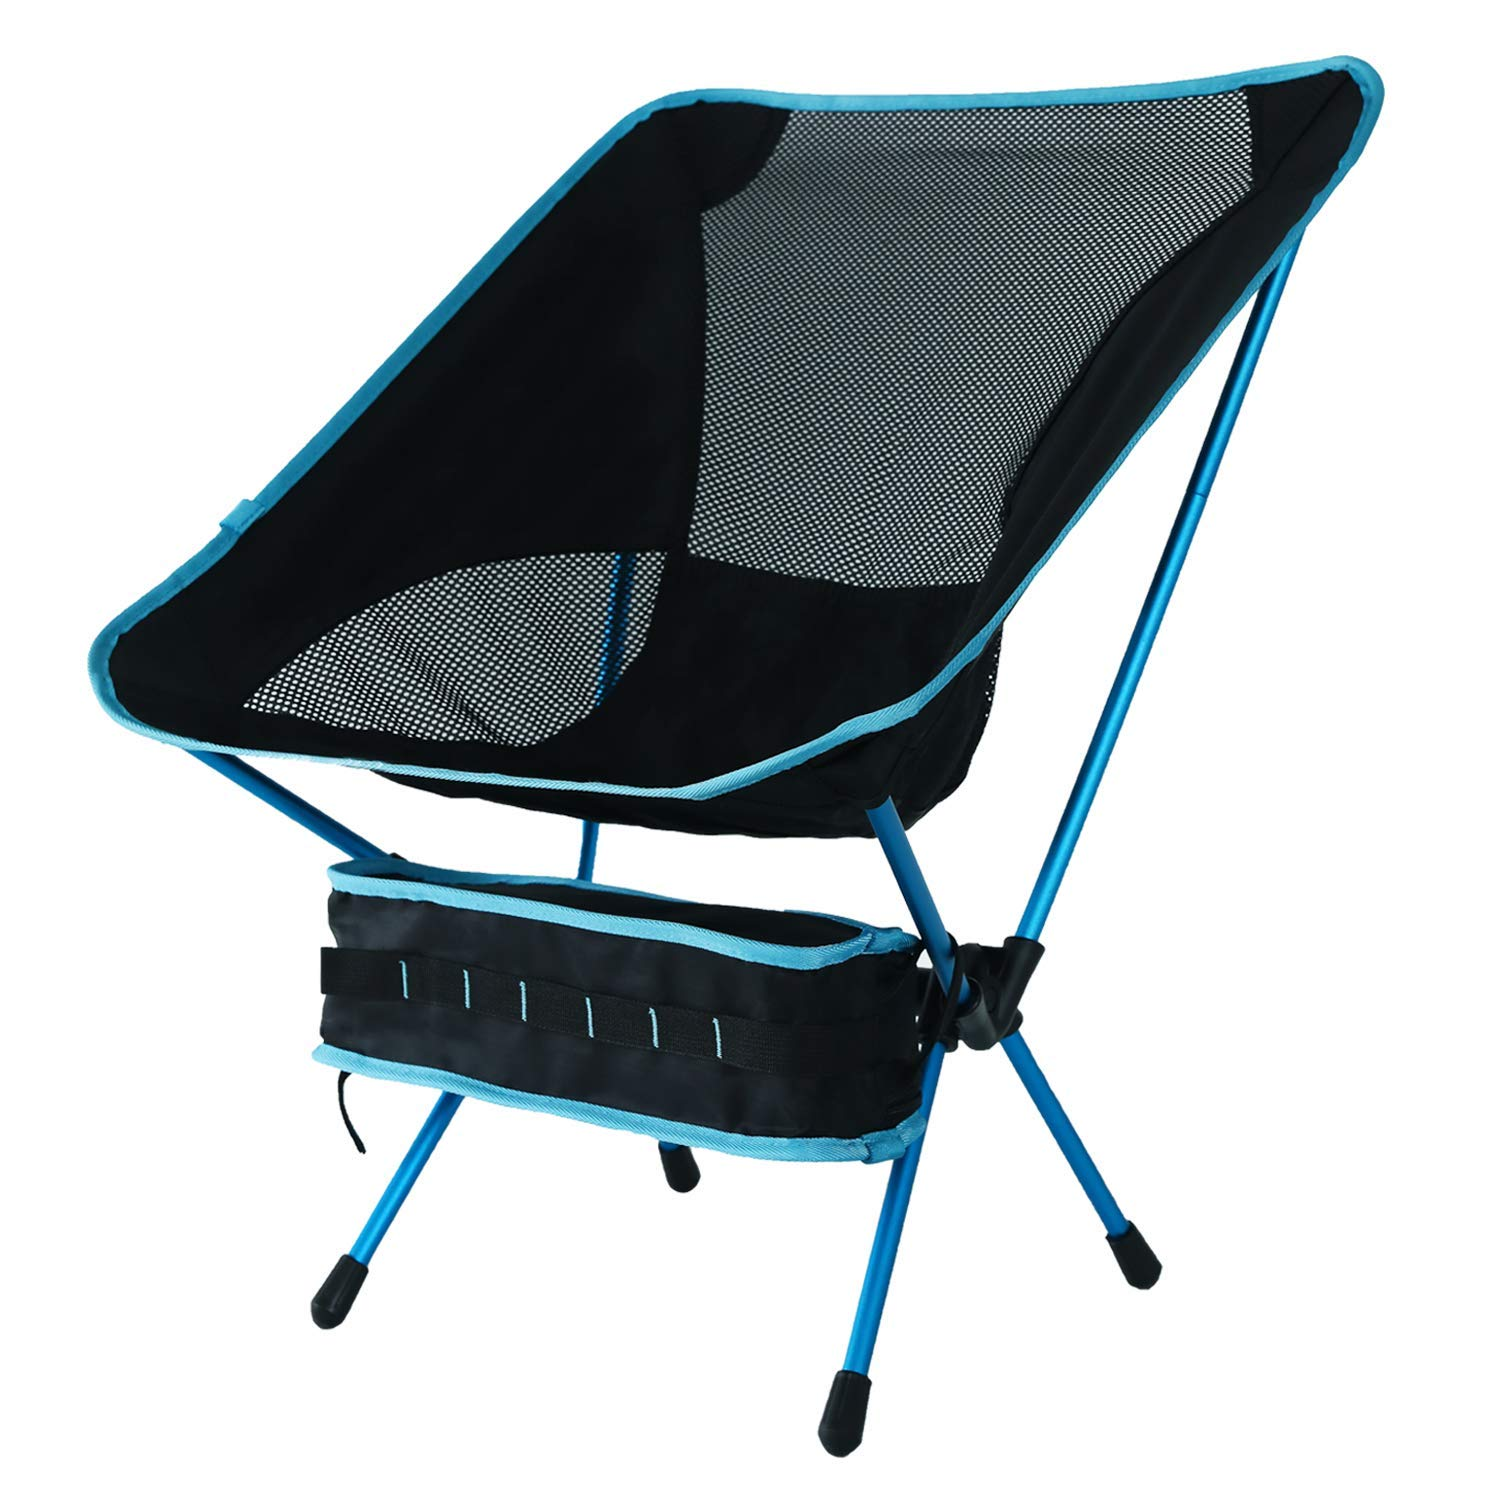 SparkleDay Folding Camping Chair Outdoor [並行輸入品] Beach Chair Lightweight B07R3Y5QJR Outdoor Backpacking Chairs with Carry Bag Perfect for Hiking, Fishing, Picnic [並行輸入品] B07R3Y5QJR, 上ノ国町:b9ce8876 --- anime-portal.club